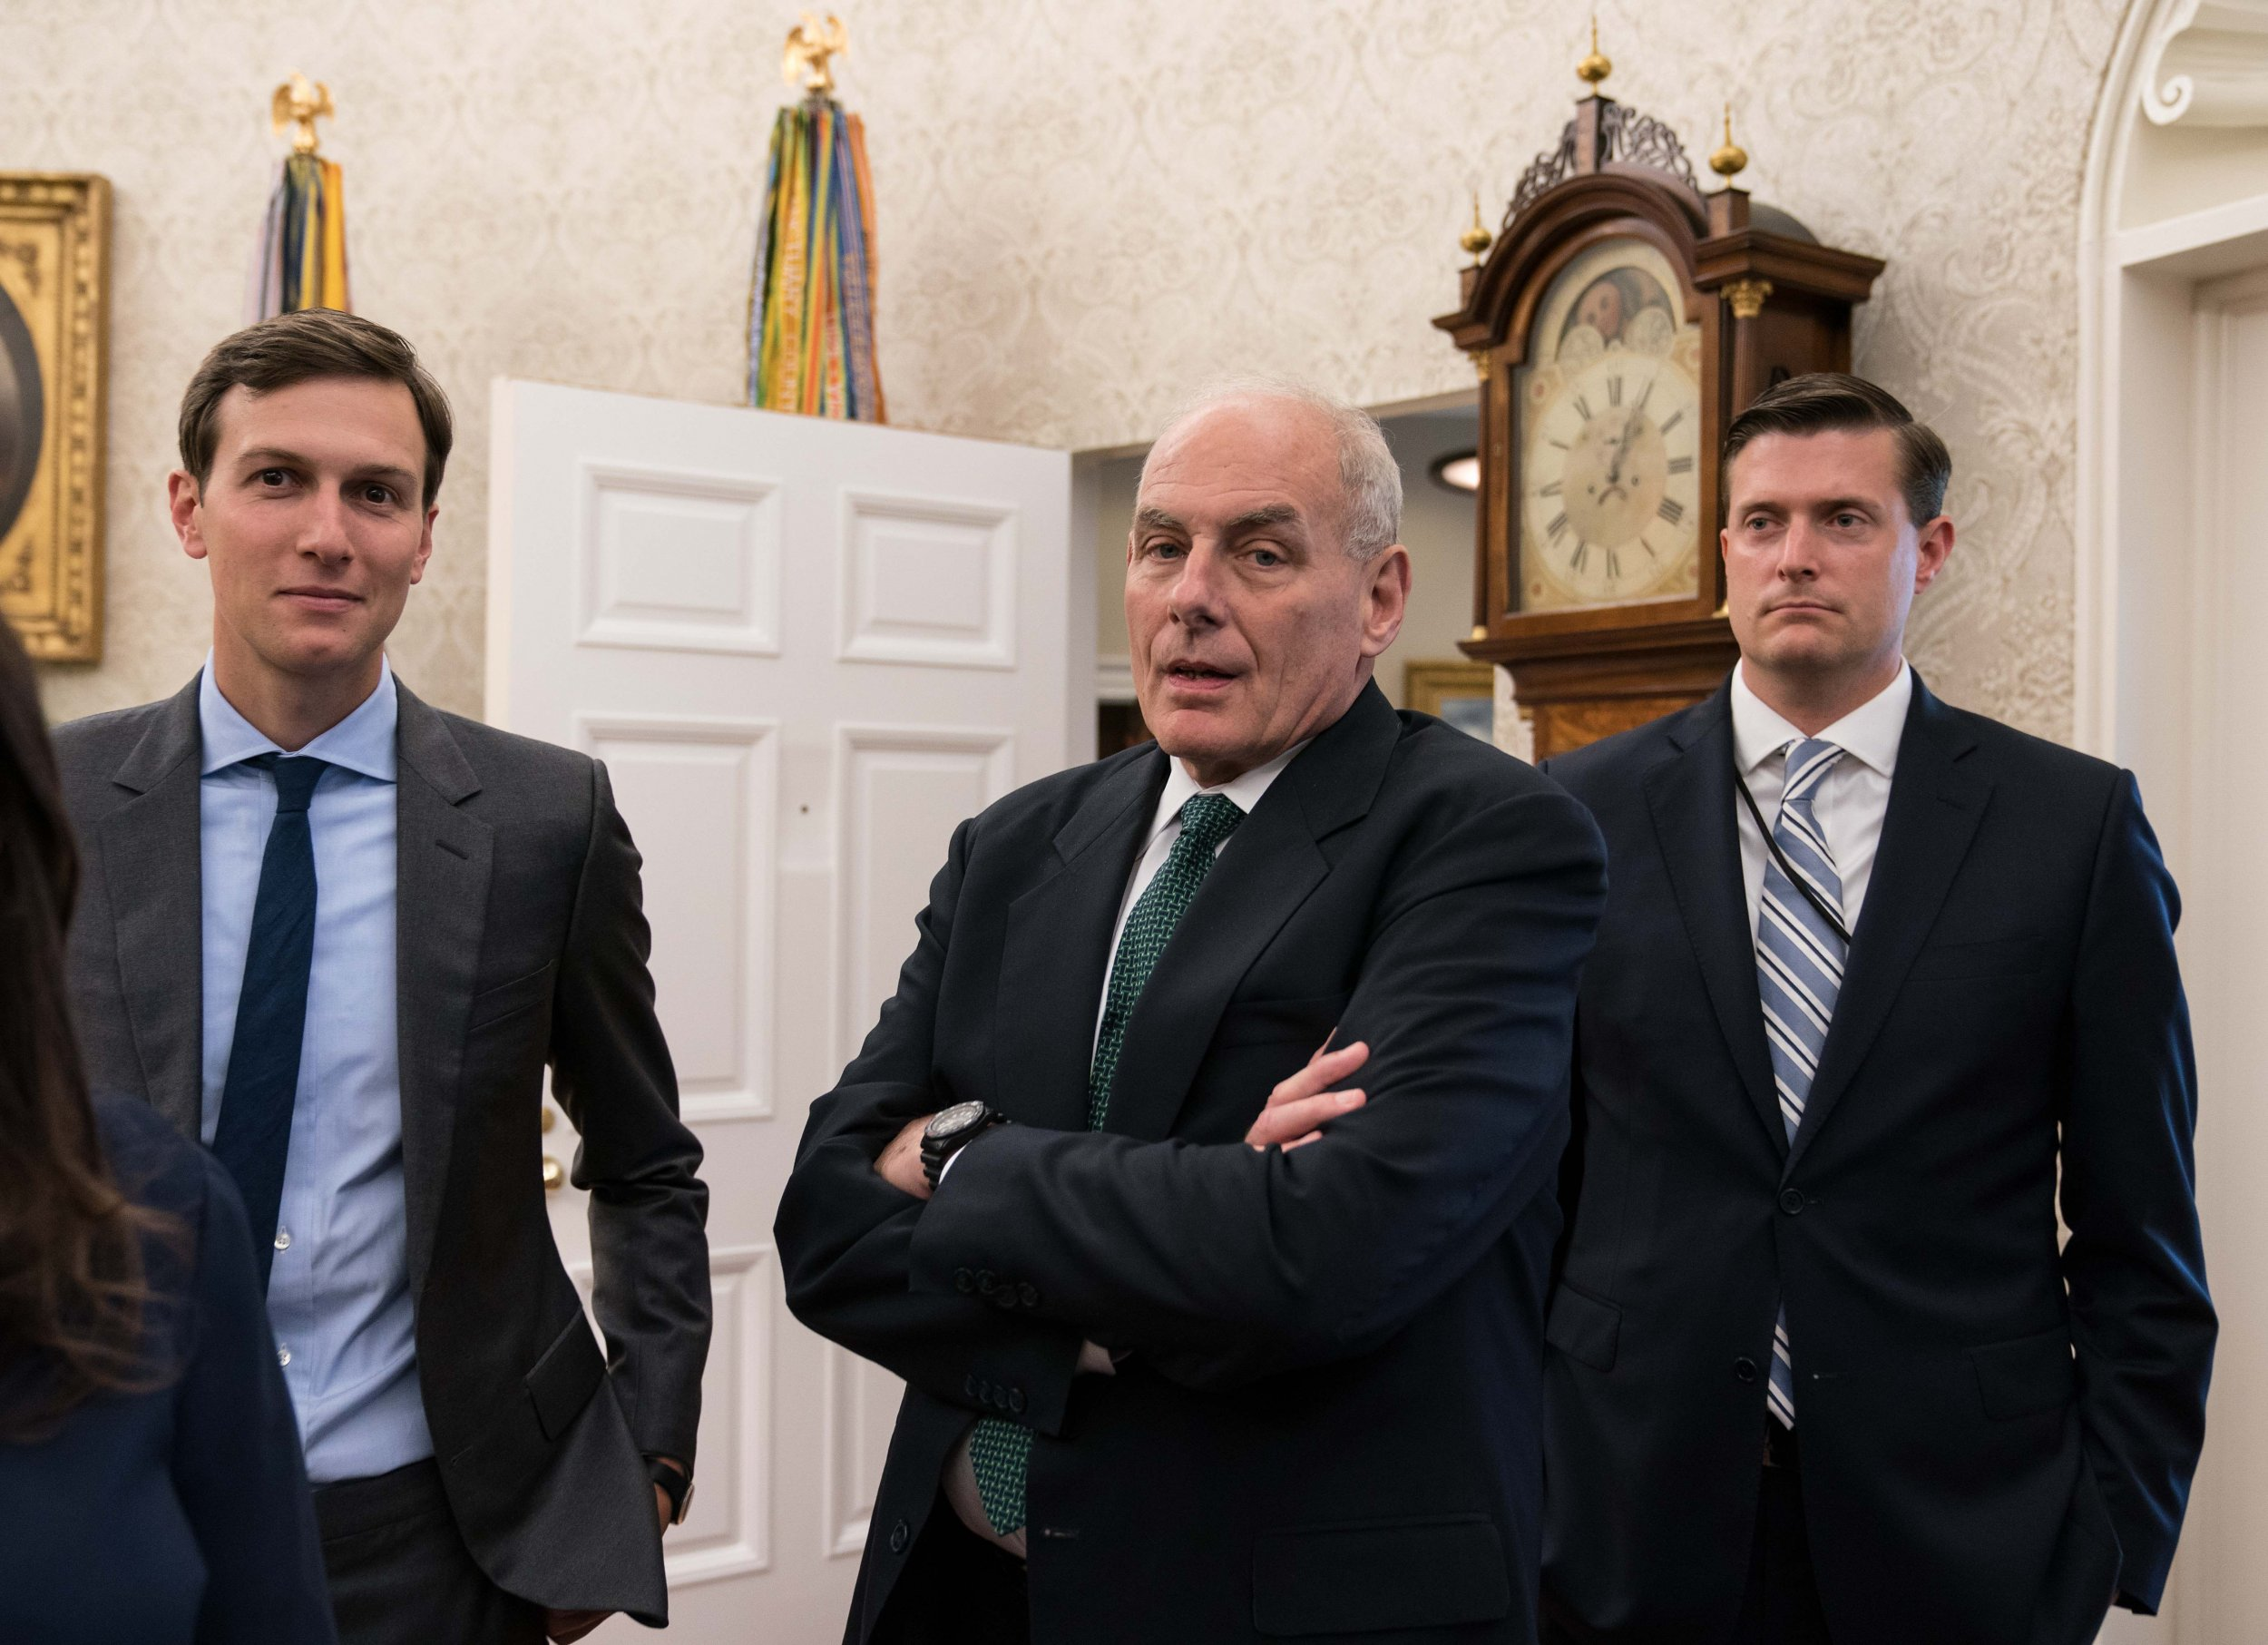 John-Kelly-Rob-Porter